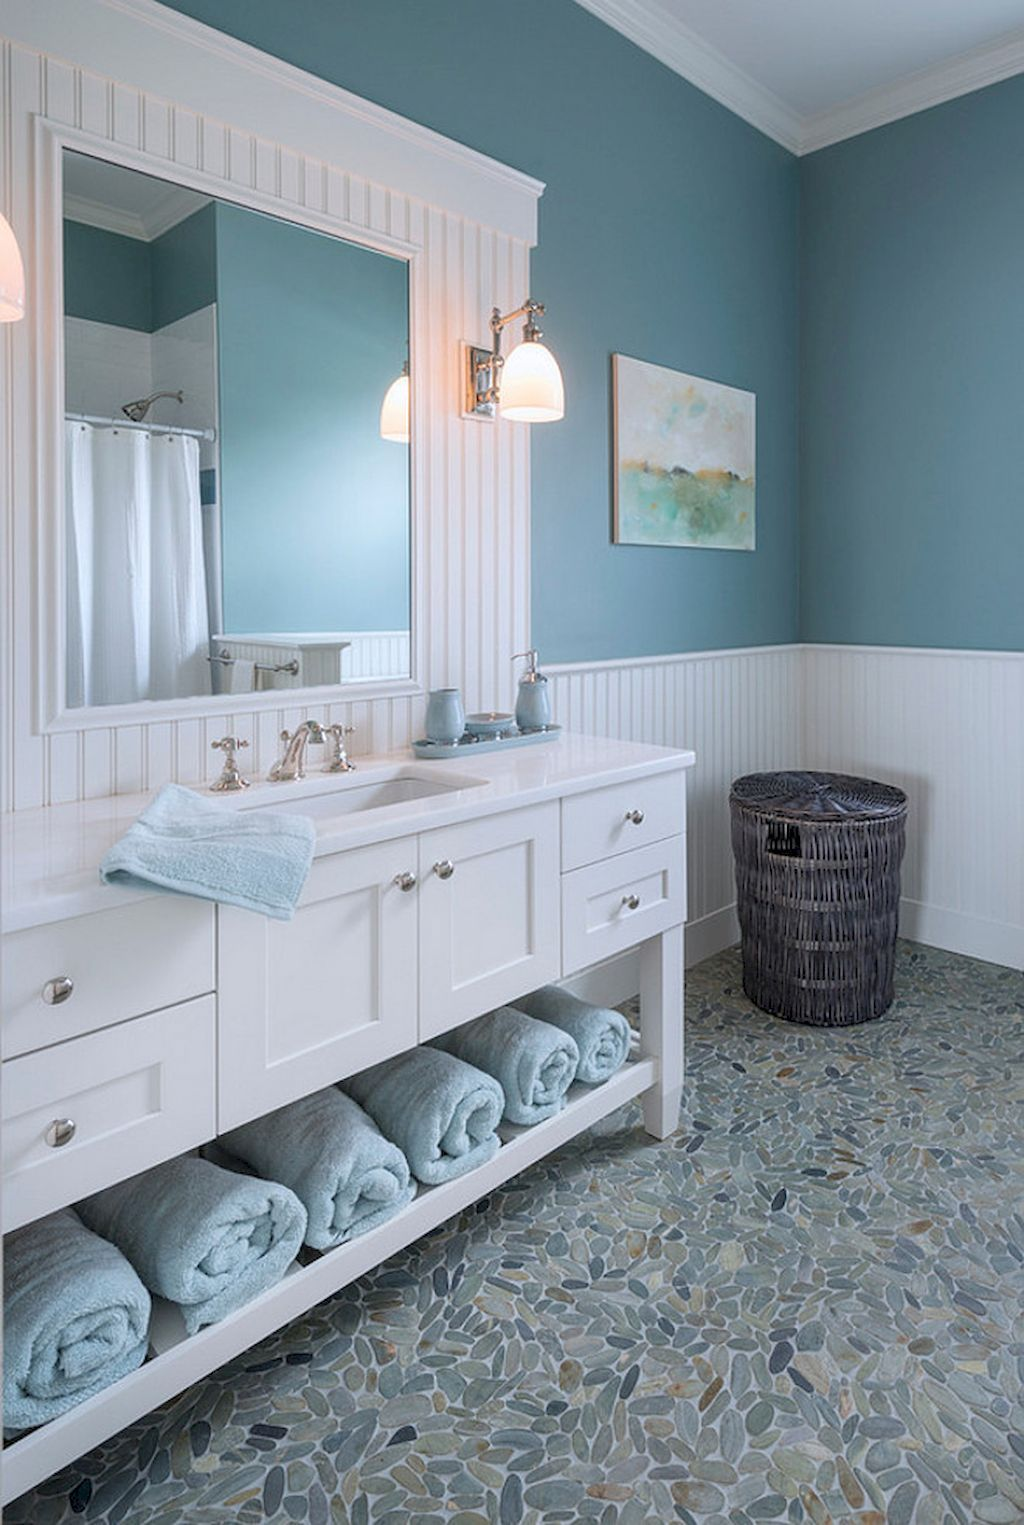 Awesome 75 Amazing Blue Hued Bathroom Remodel Ideas https ...